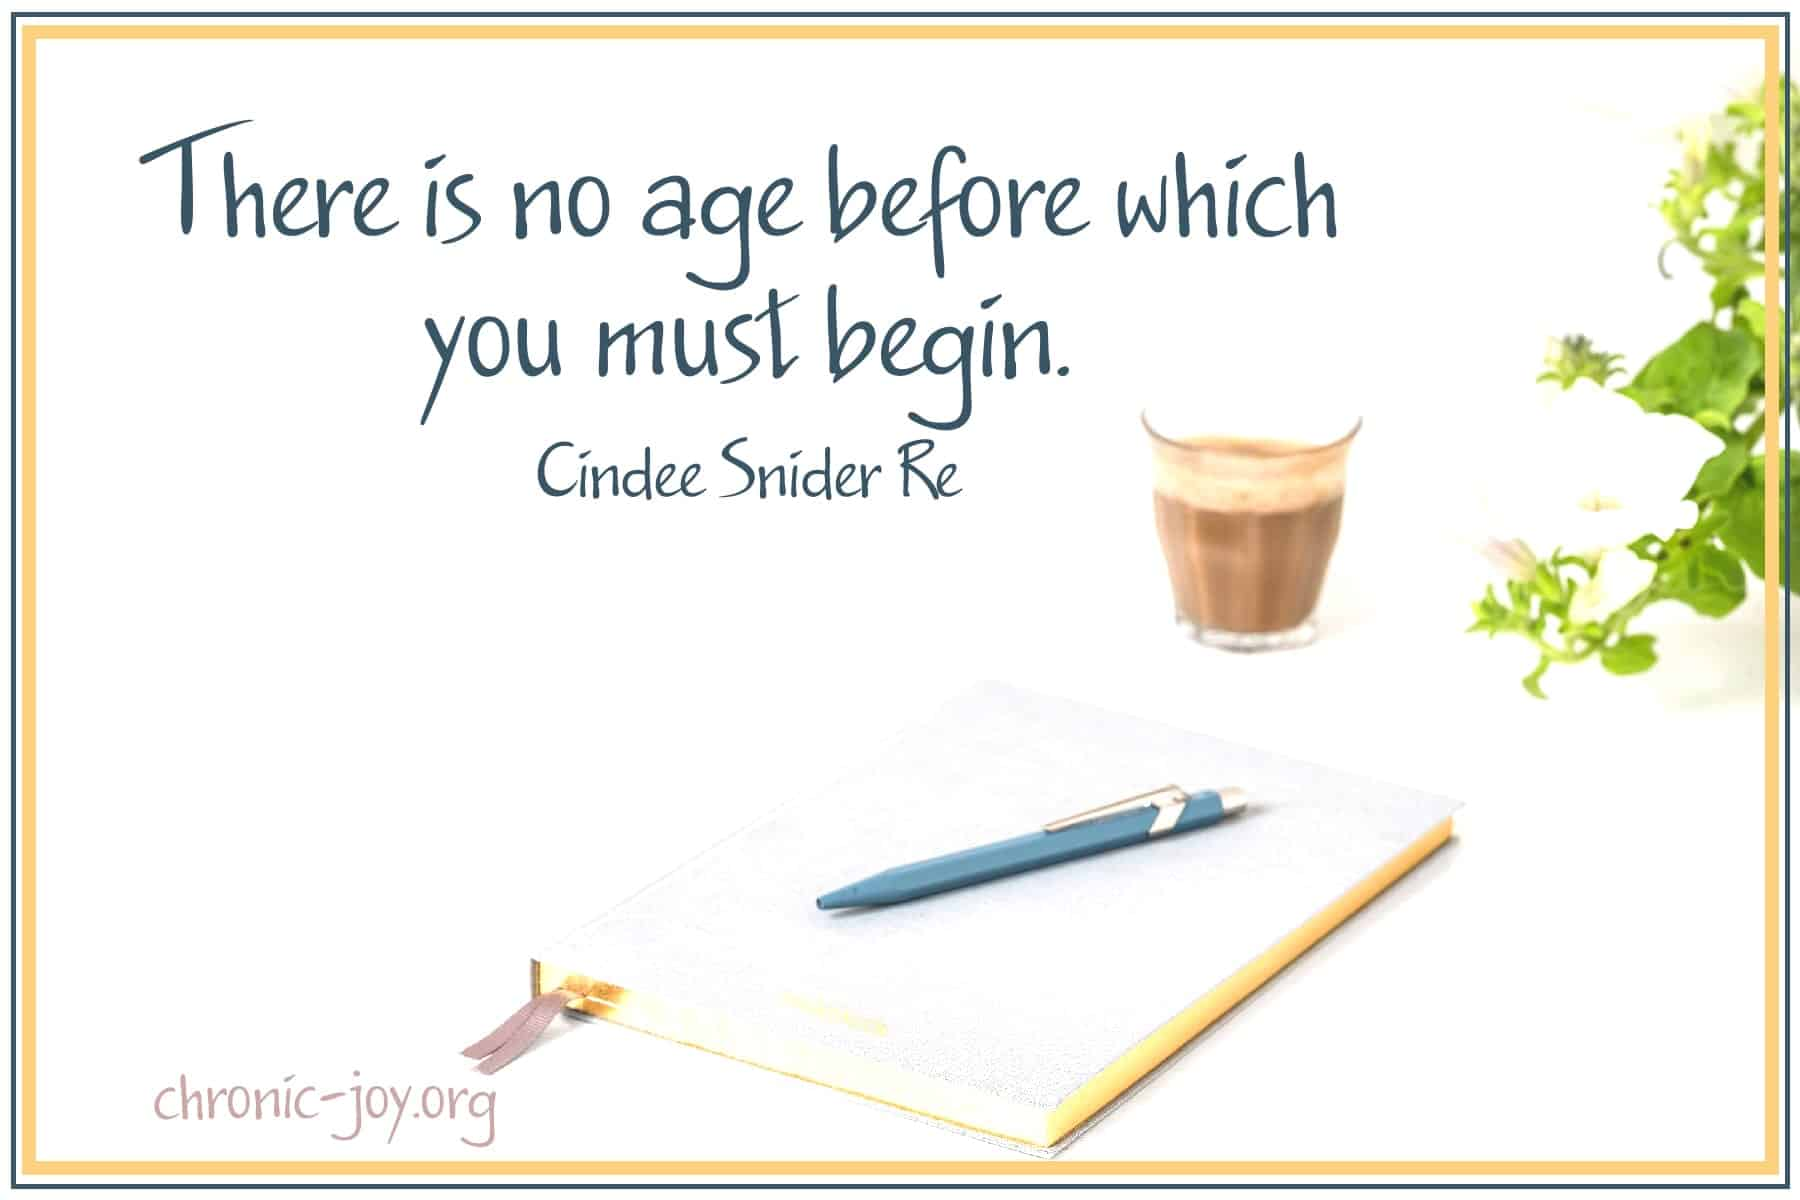 """There is no age before which you must begin."" Cindee Snider Re"